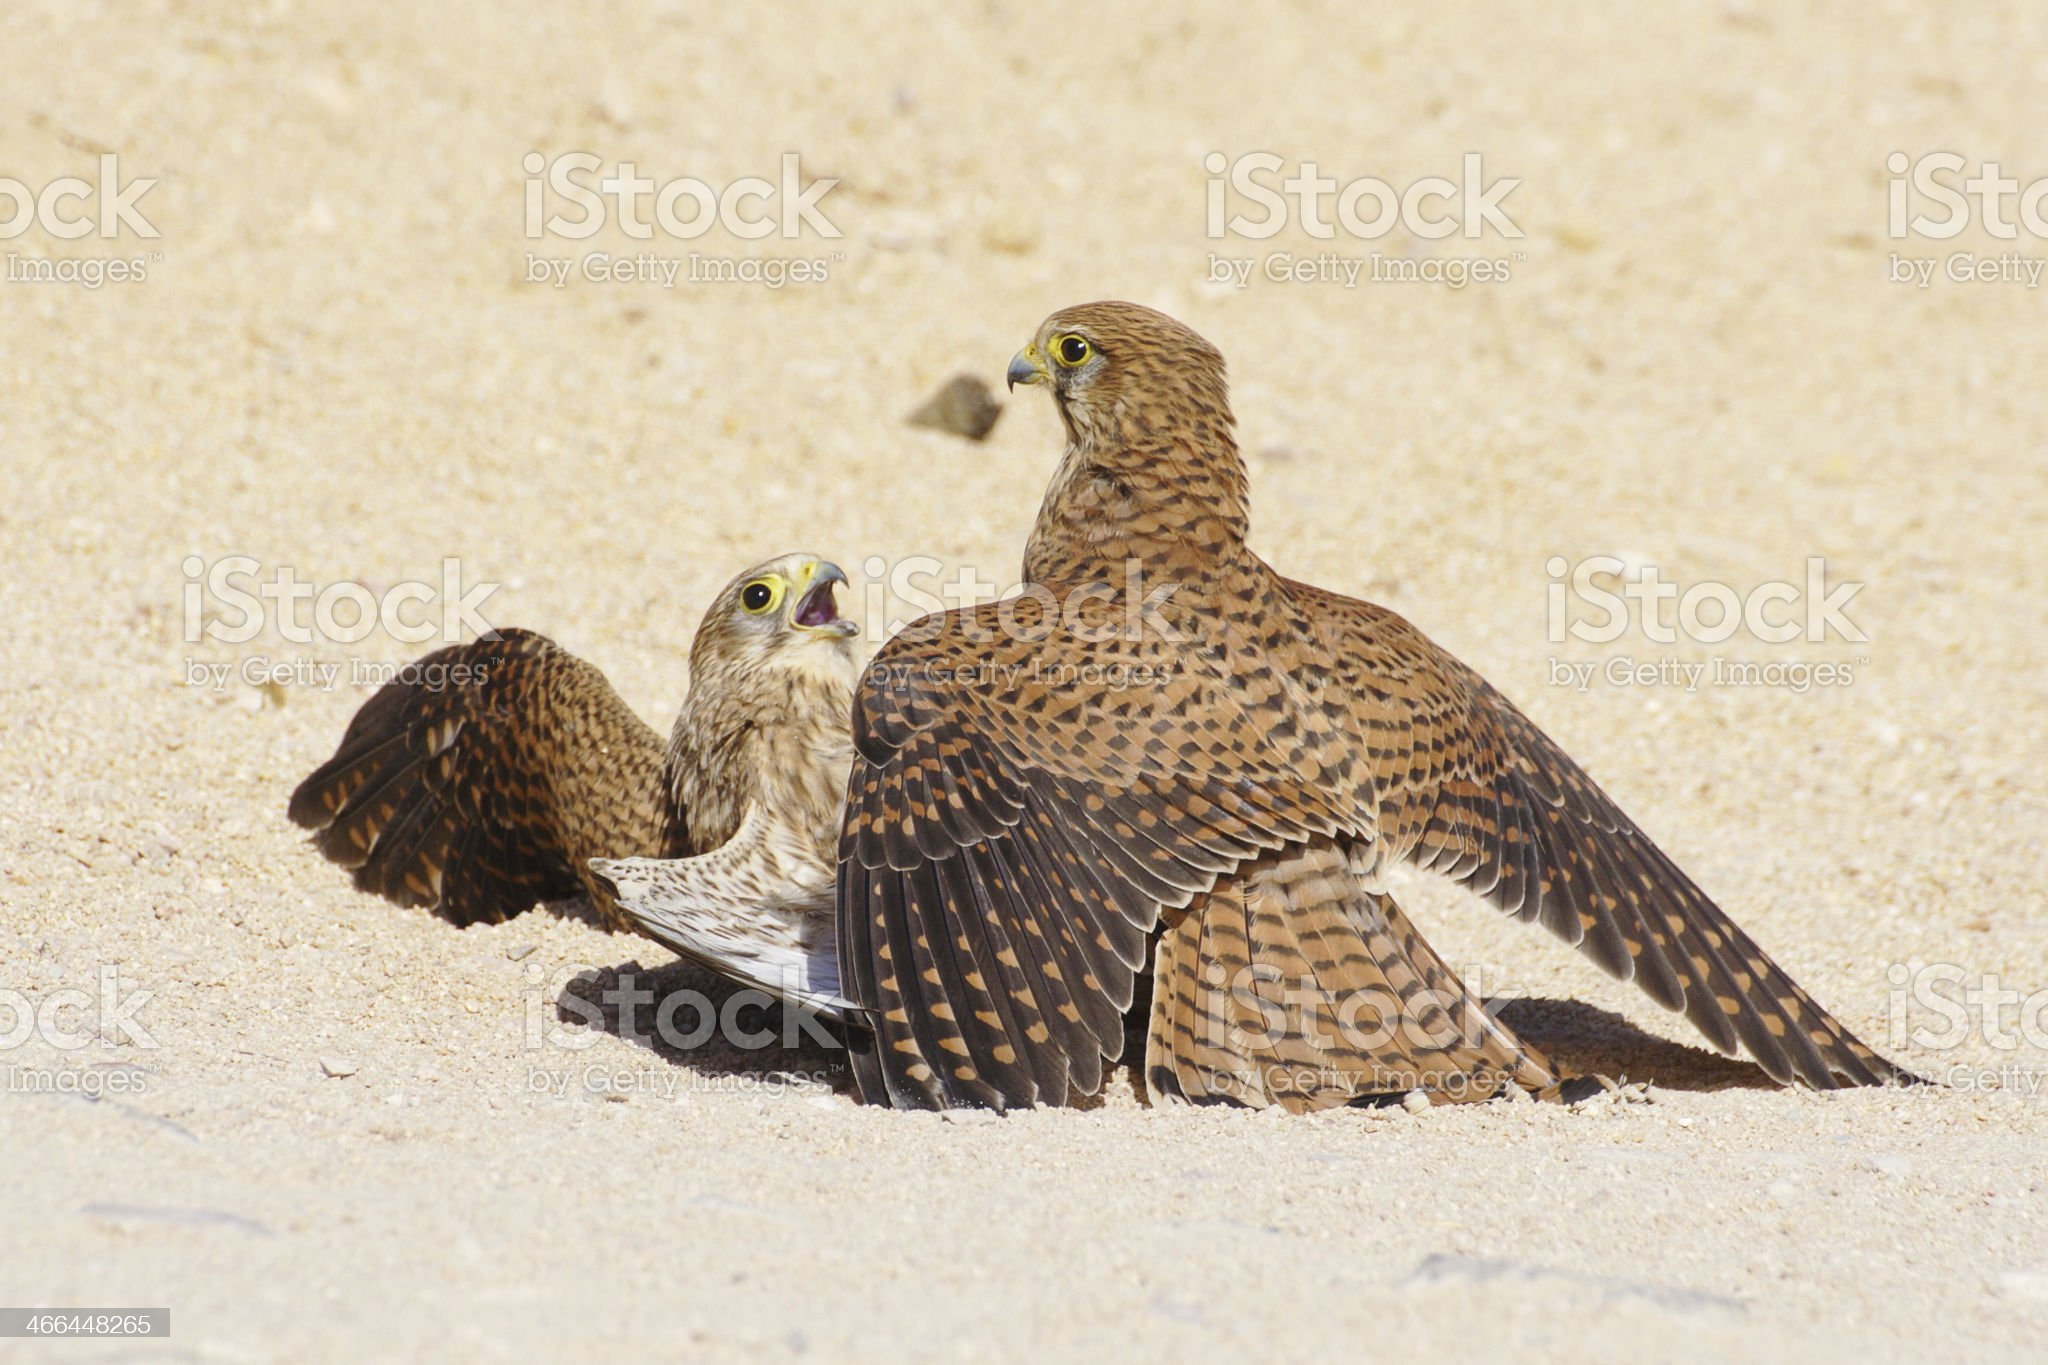 Bird's fight royalty-free stock photo